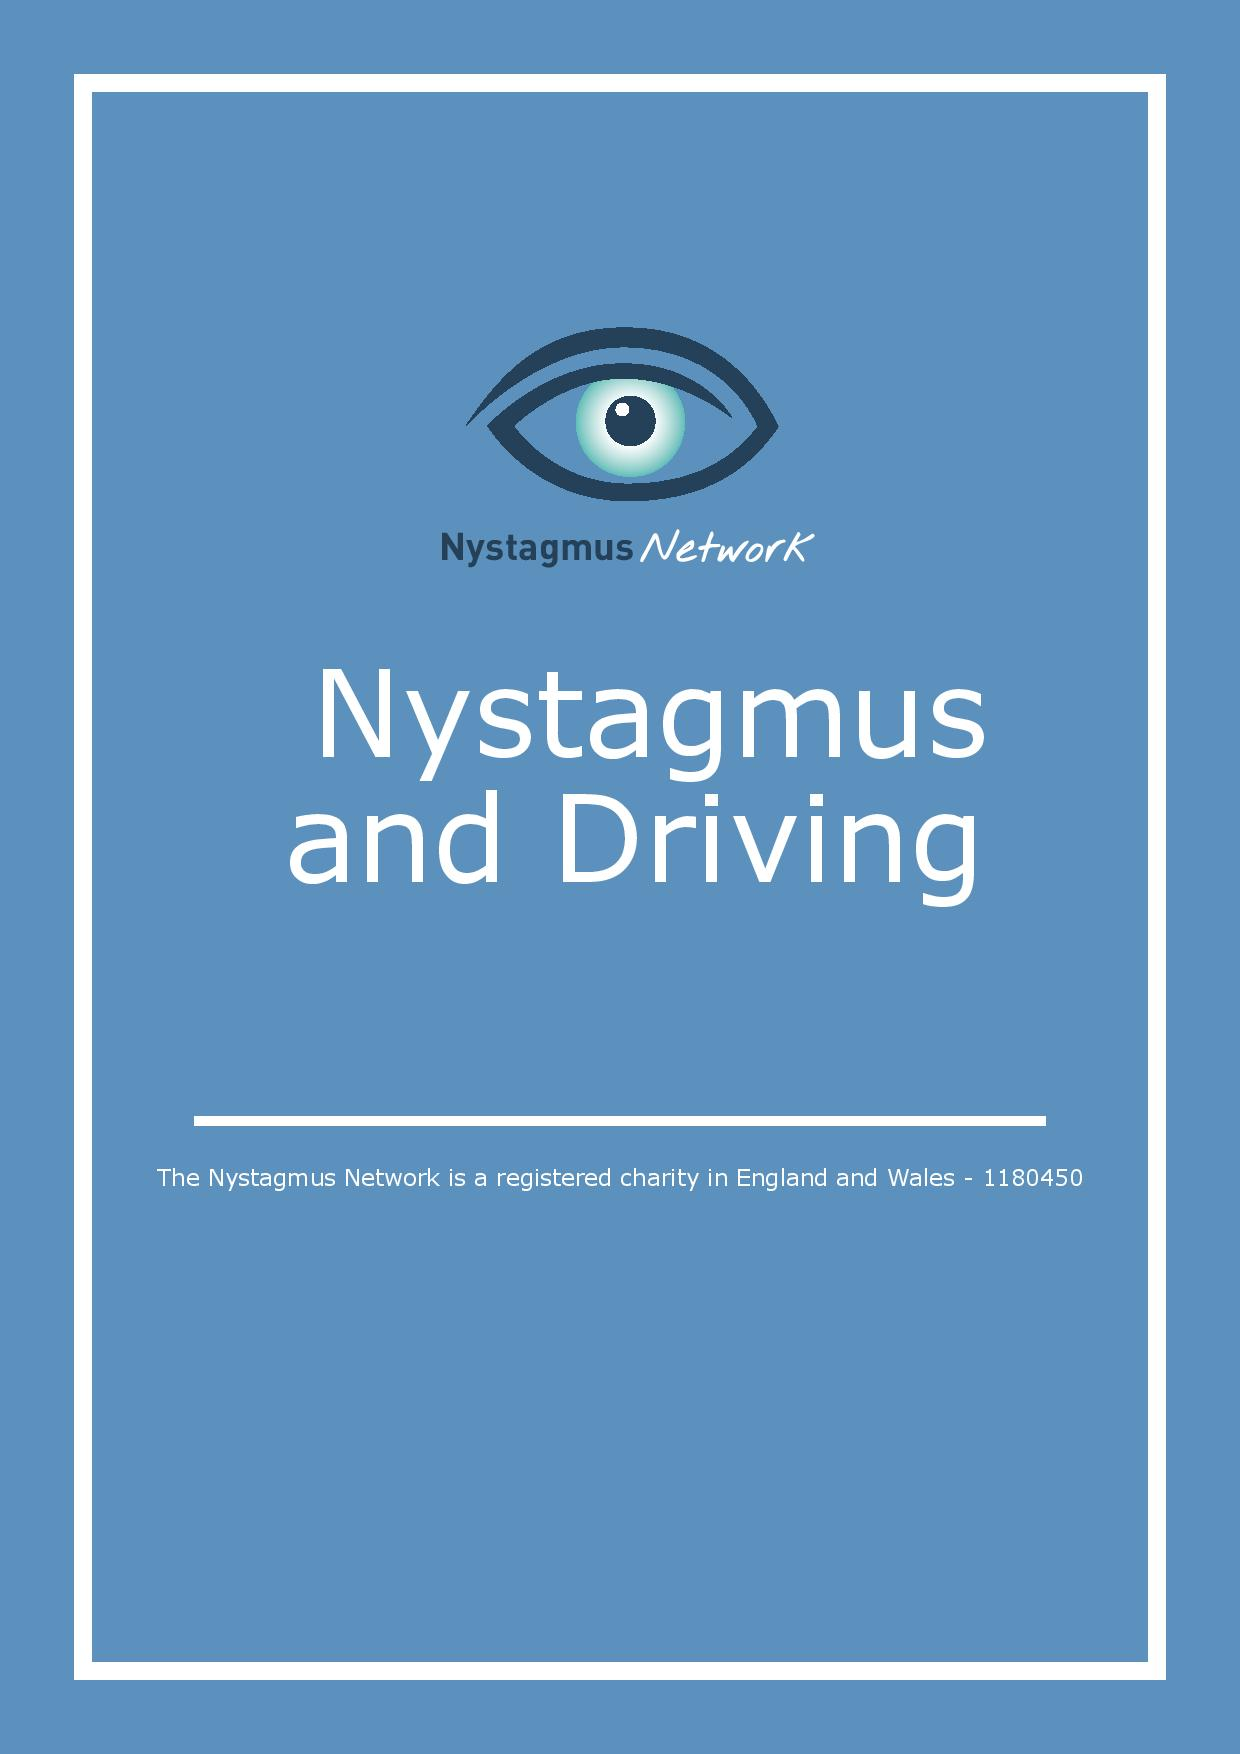 Nystagmus and Driving front cover.